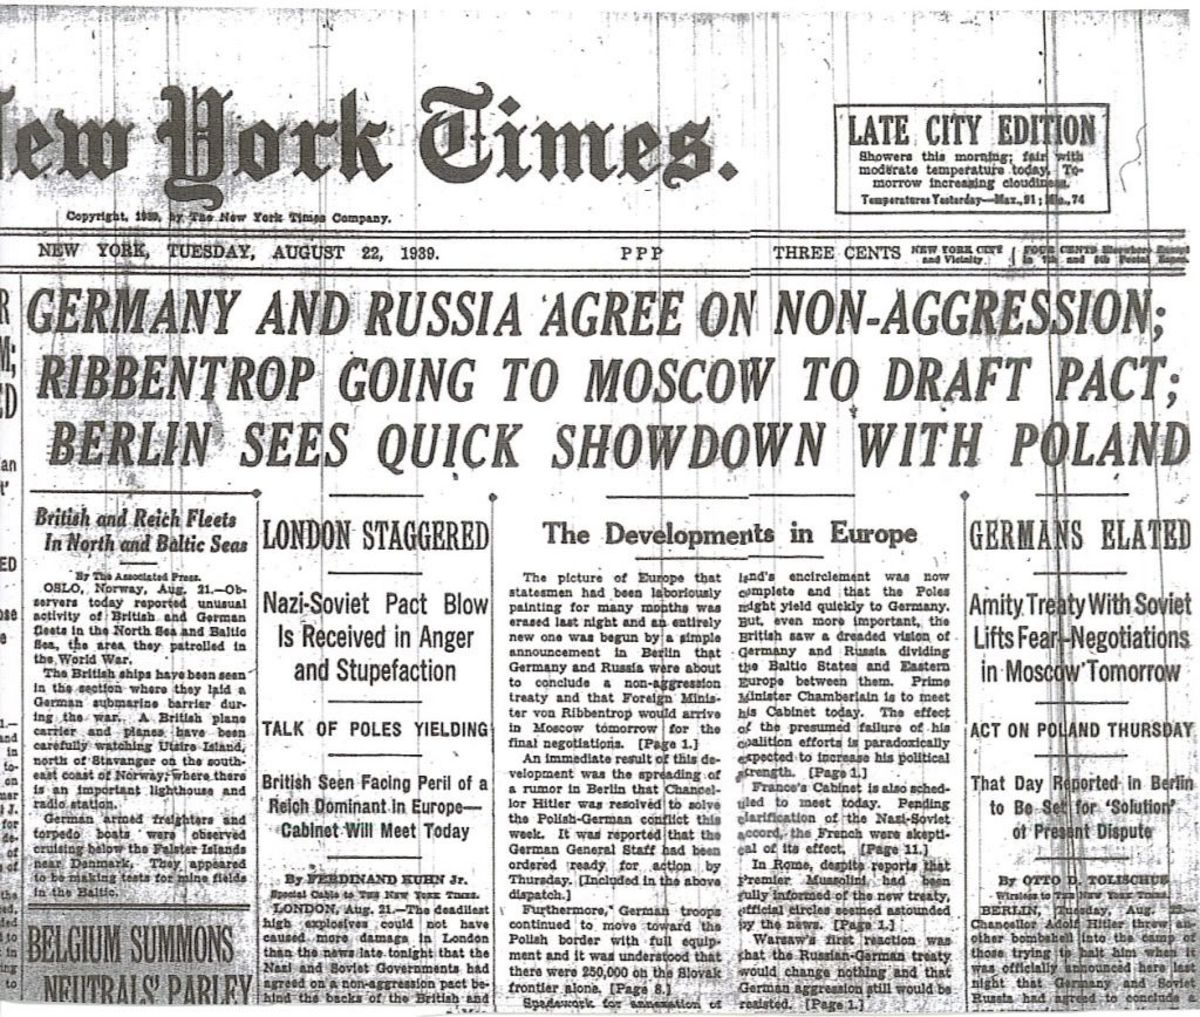 The Buildup to the Russian Invasion in 1941:the Nazi- Russia Non-Aggression Pact